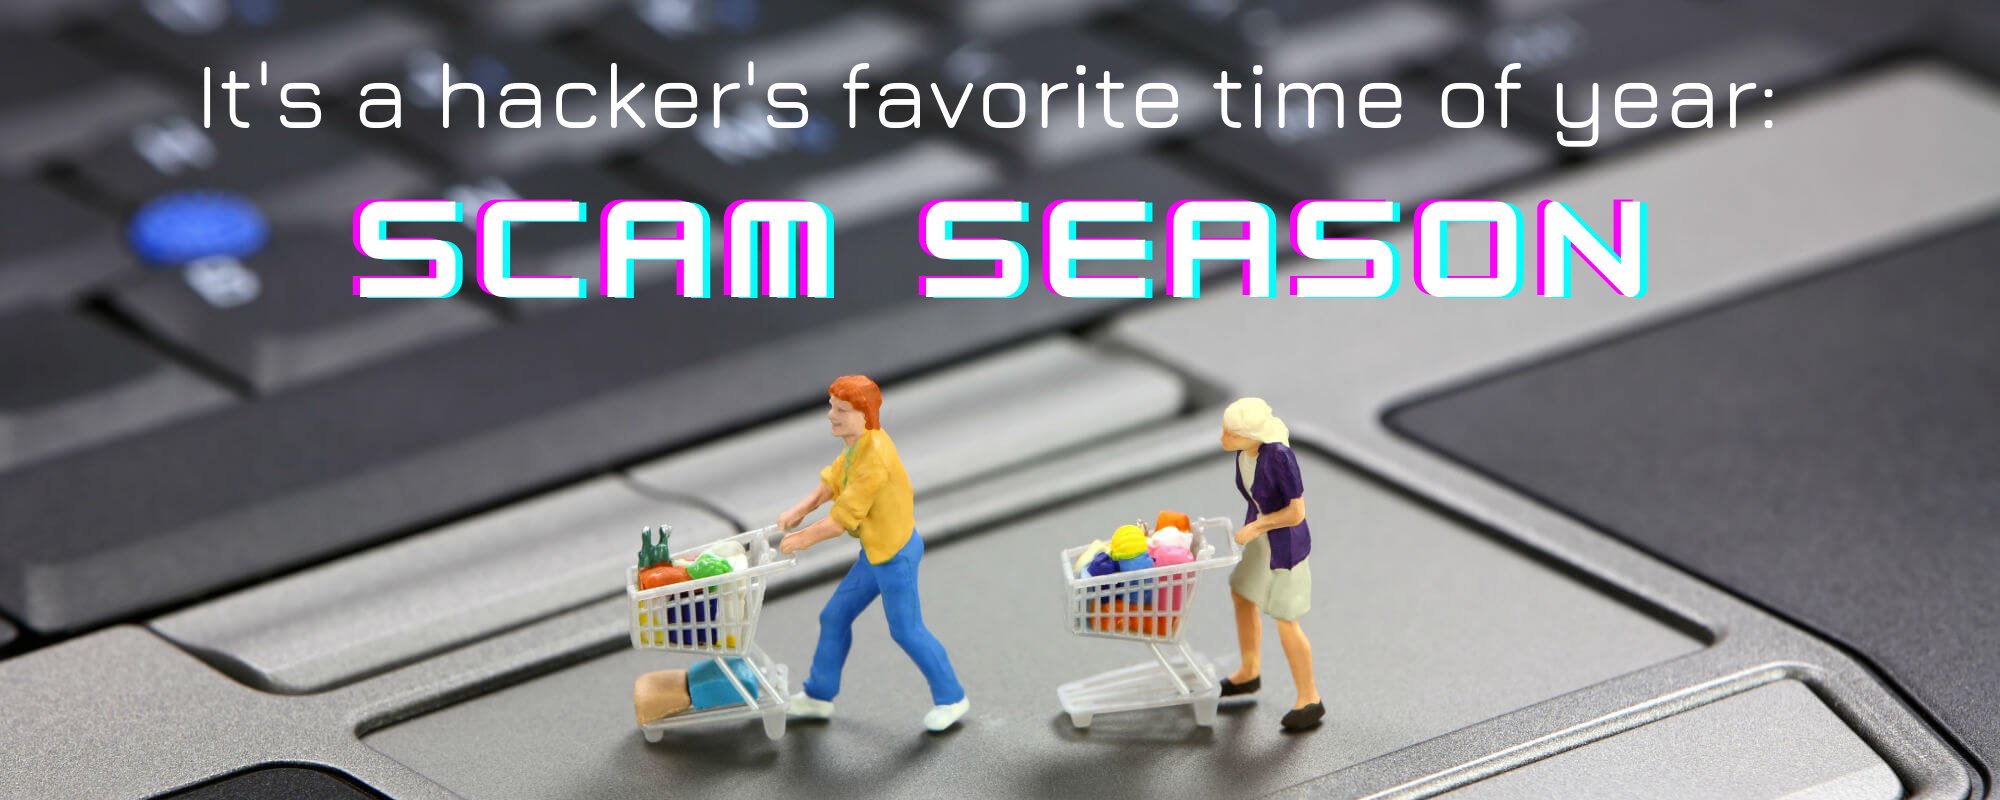 "Image of people shopping on a computer trackpad with the text ""It's a hacker's favorite time of year: Scam Season."""